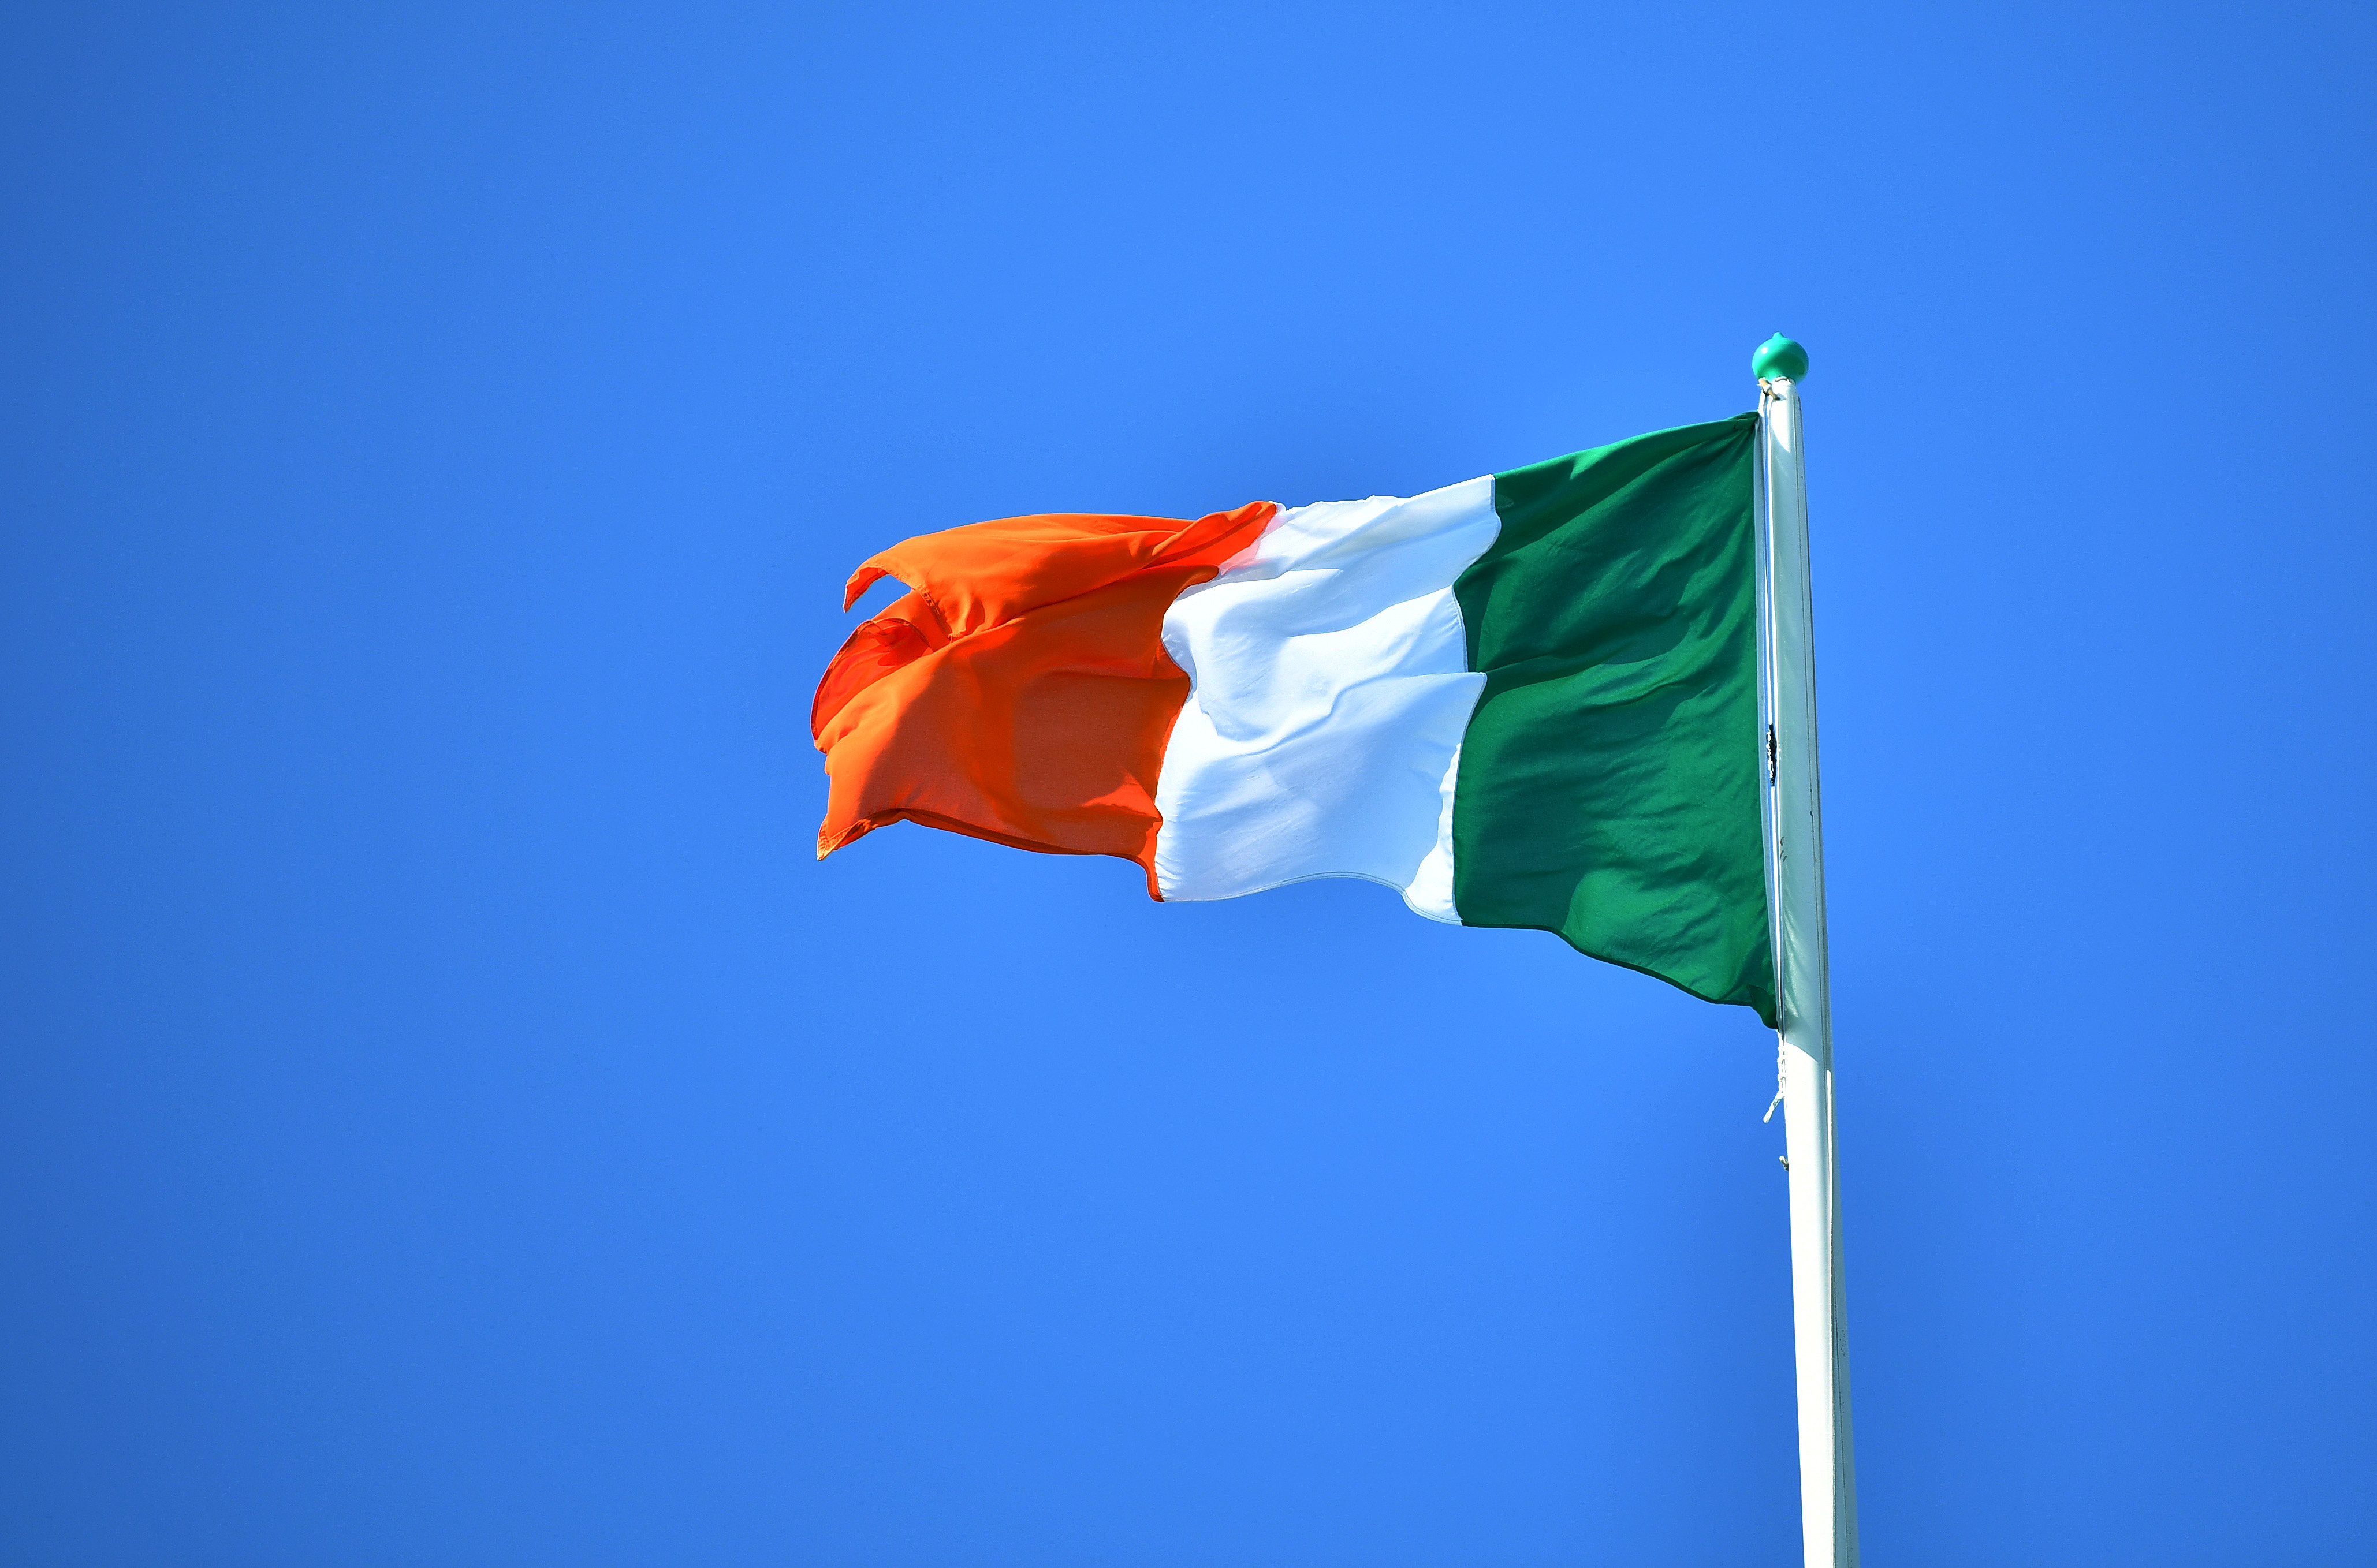 National flag of Ireland flies above the President's residence, ahead of the arrival of Pope Francis, in Dublin, Ireland, August 25, 2018. REUTERS/Dylan Martinez - RC12C3B40540